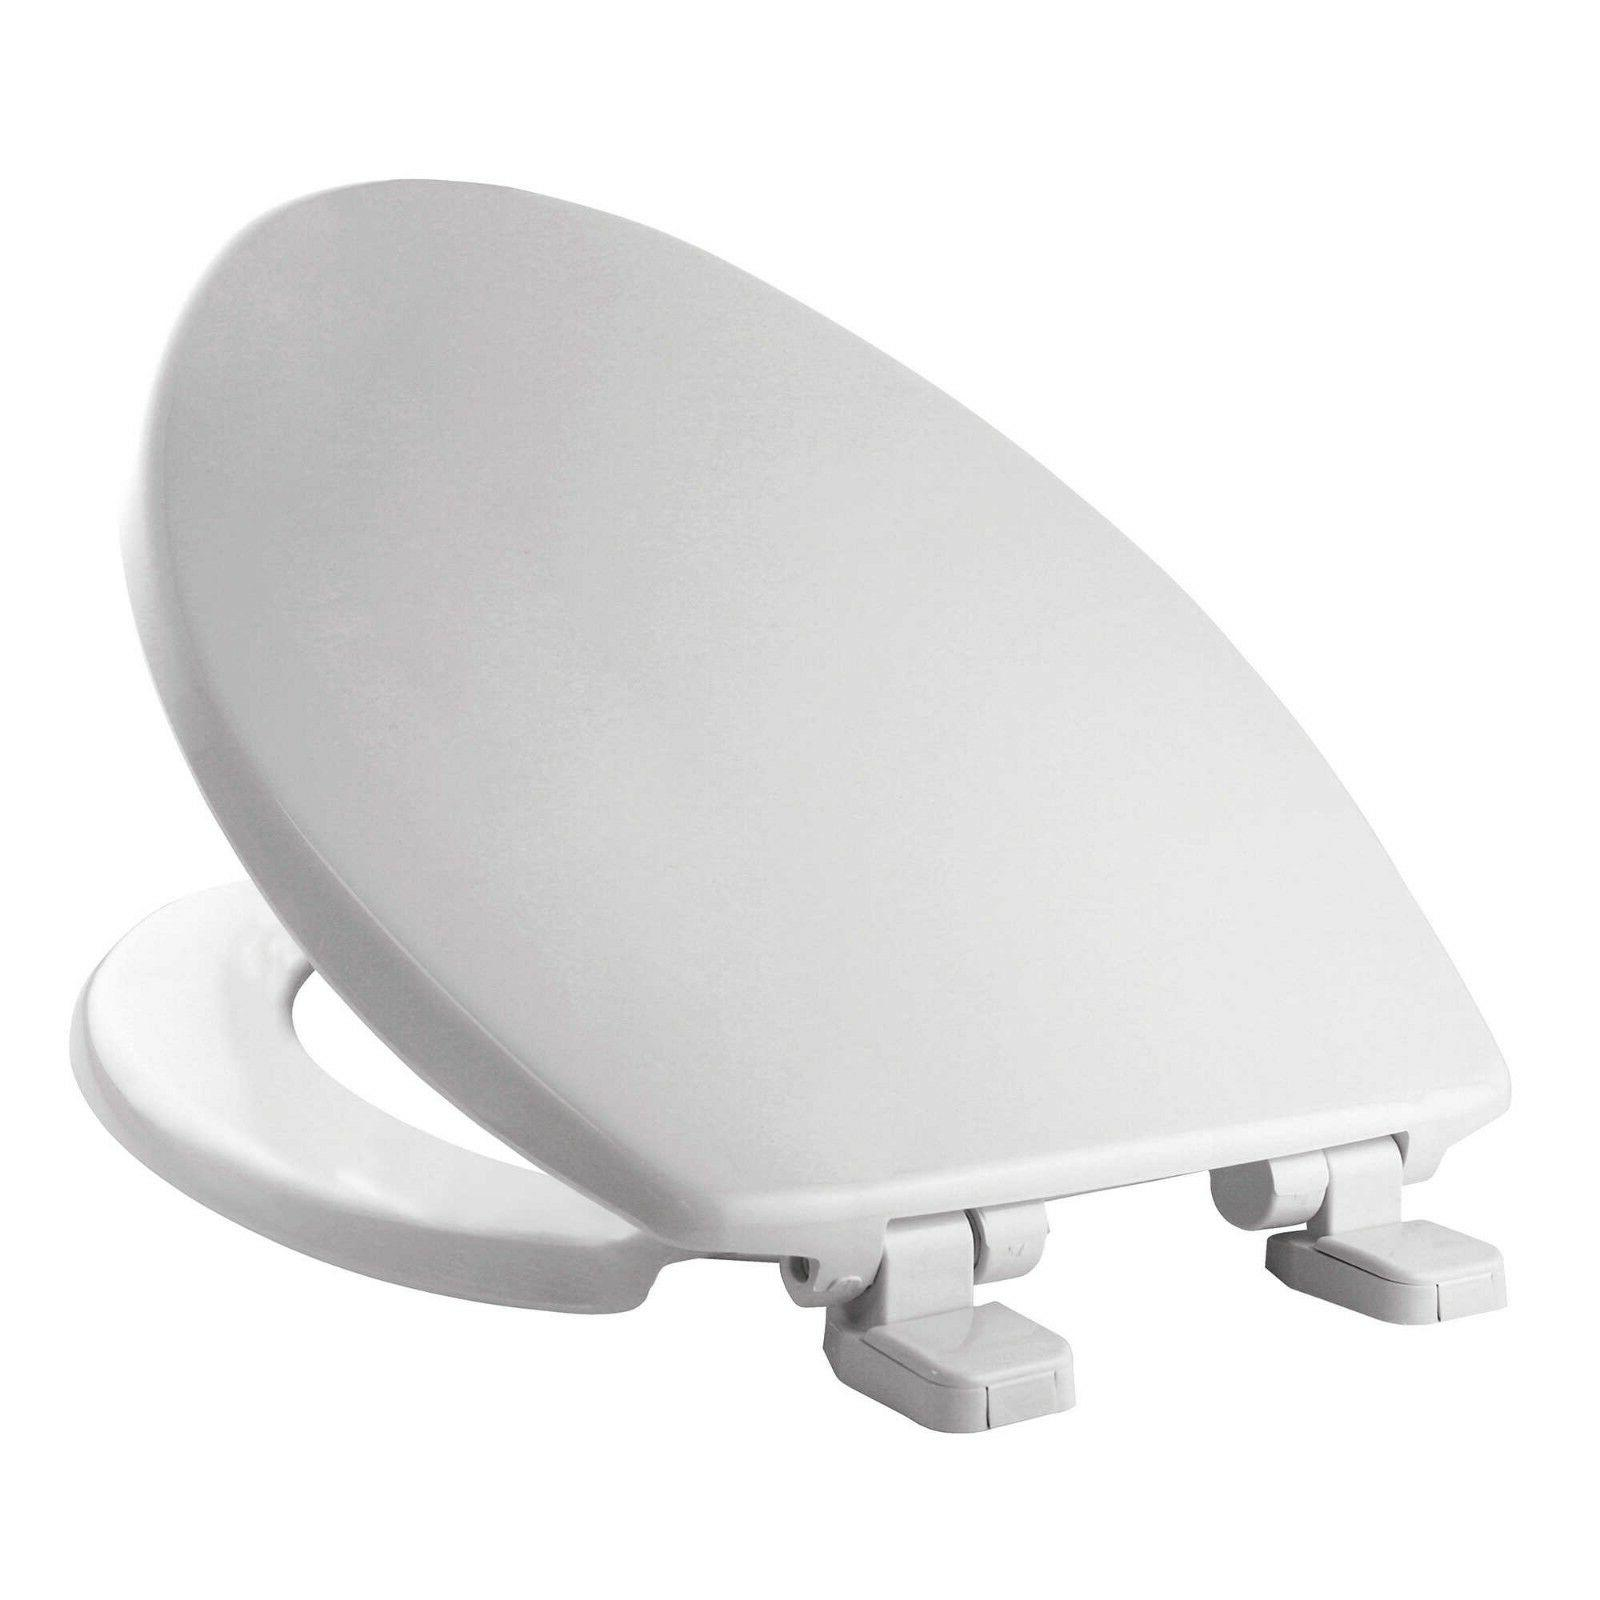 Awesome Mayfair 184Slowj 000 Elongated Toilet Seat Plastic White Gmtry Best Dining Table And Chair Ideas Images Gmtryco